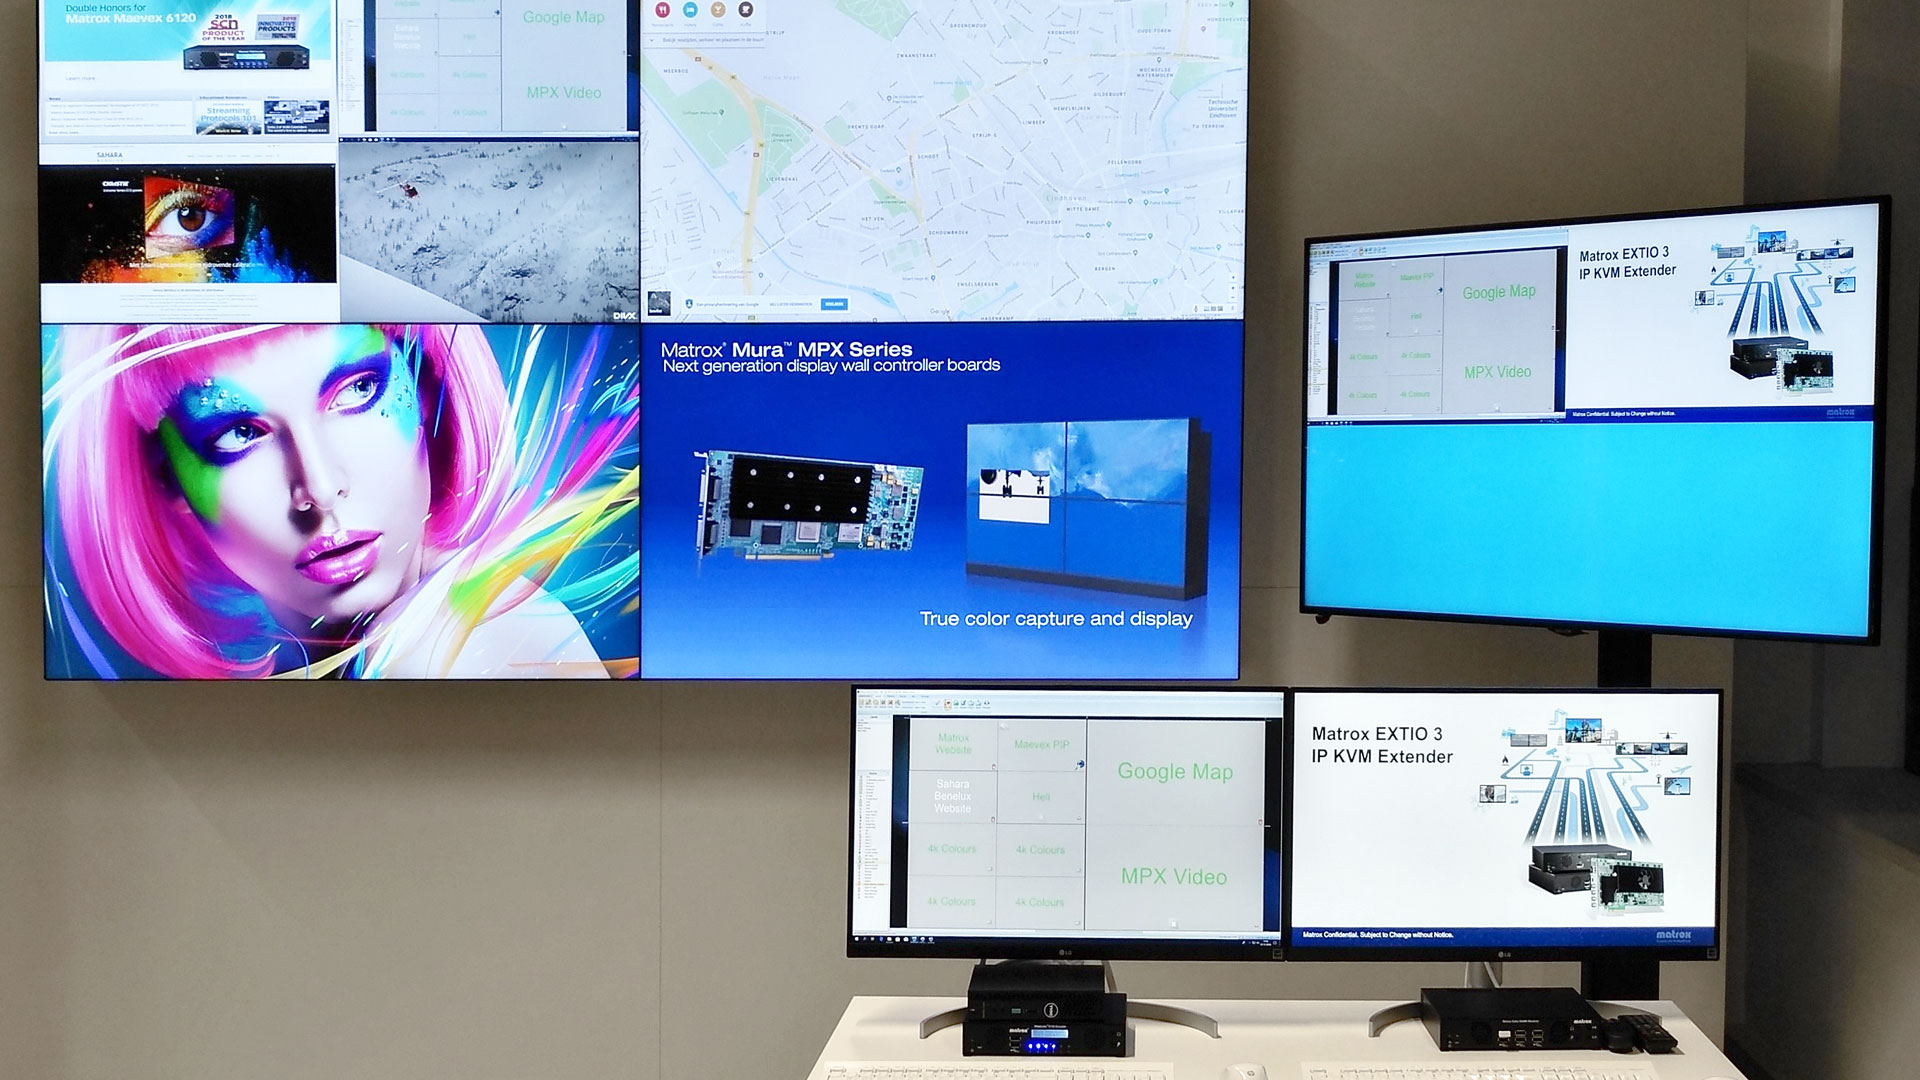 Sahara Benelux's New Technology  Demo Room Features Several Matrox-Powered AV-Over-IP Ecosystems